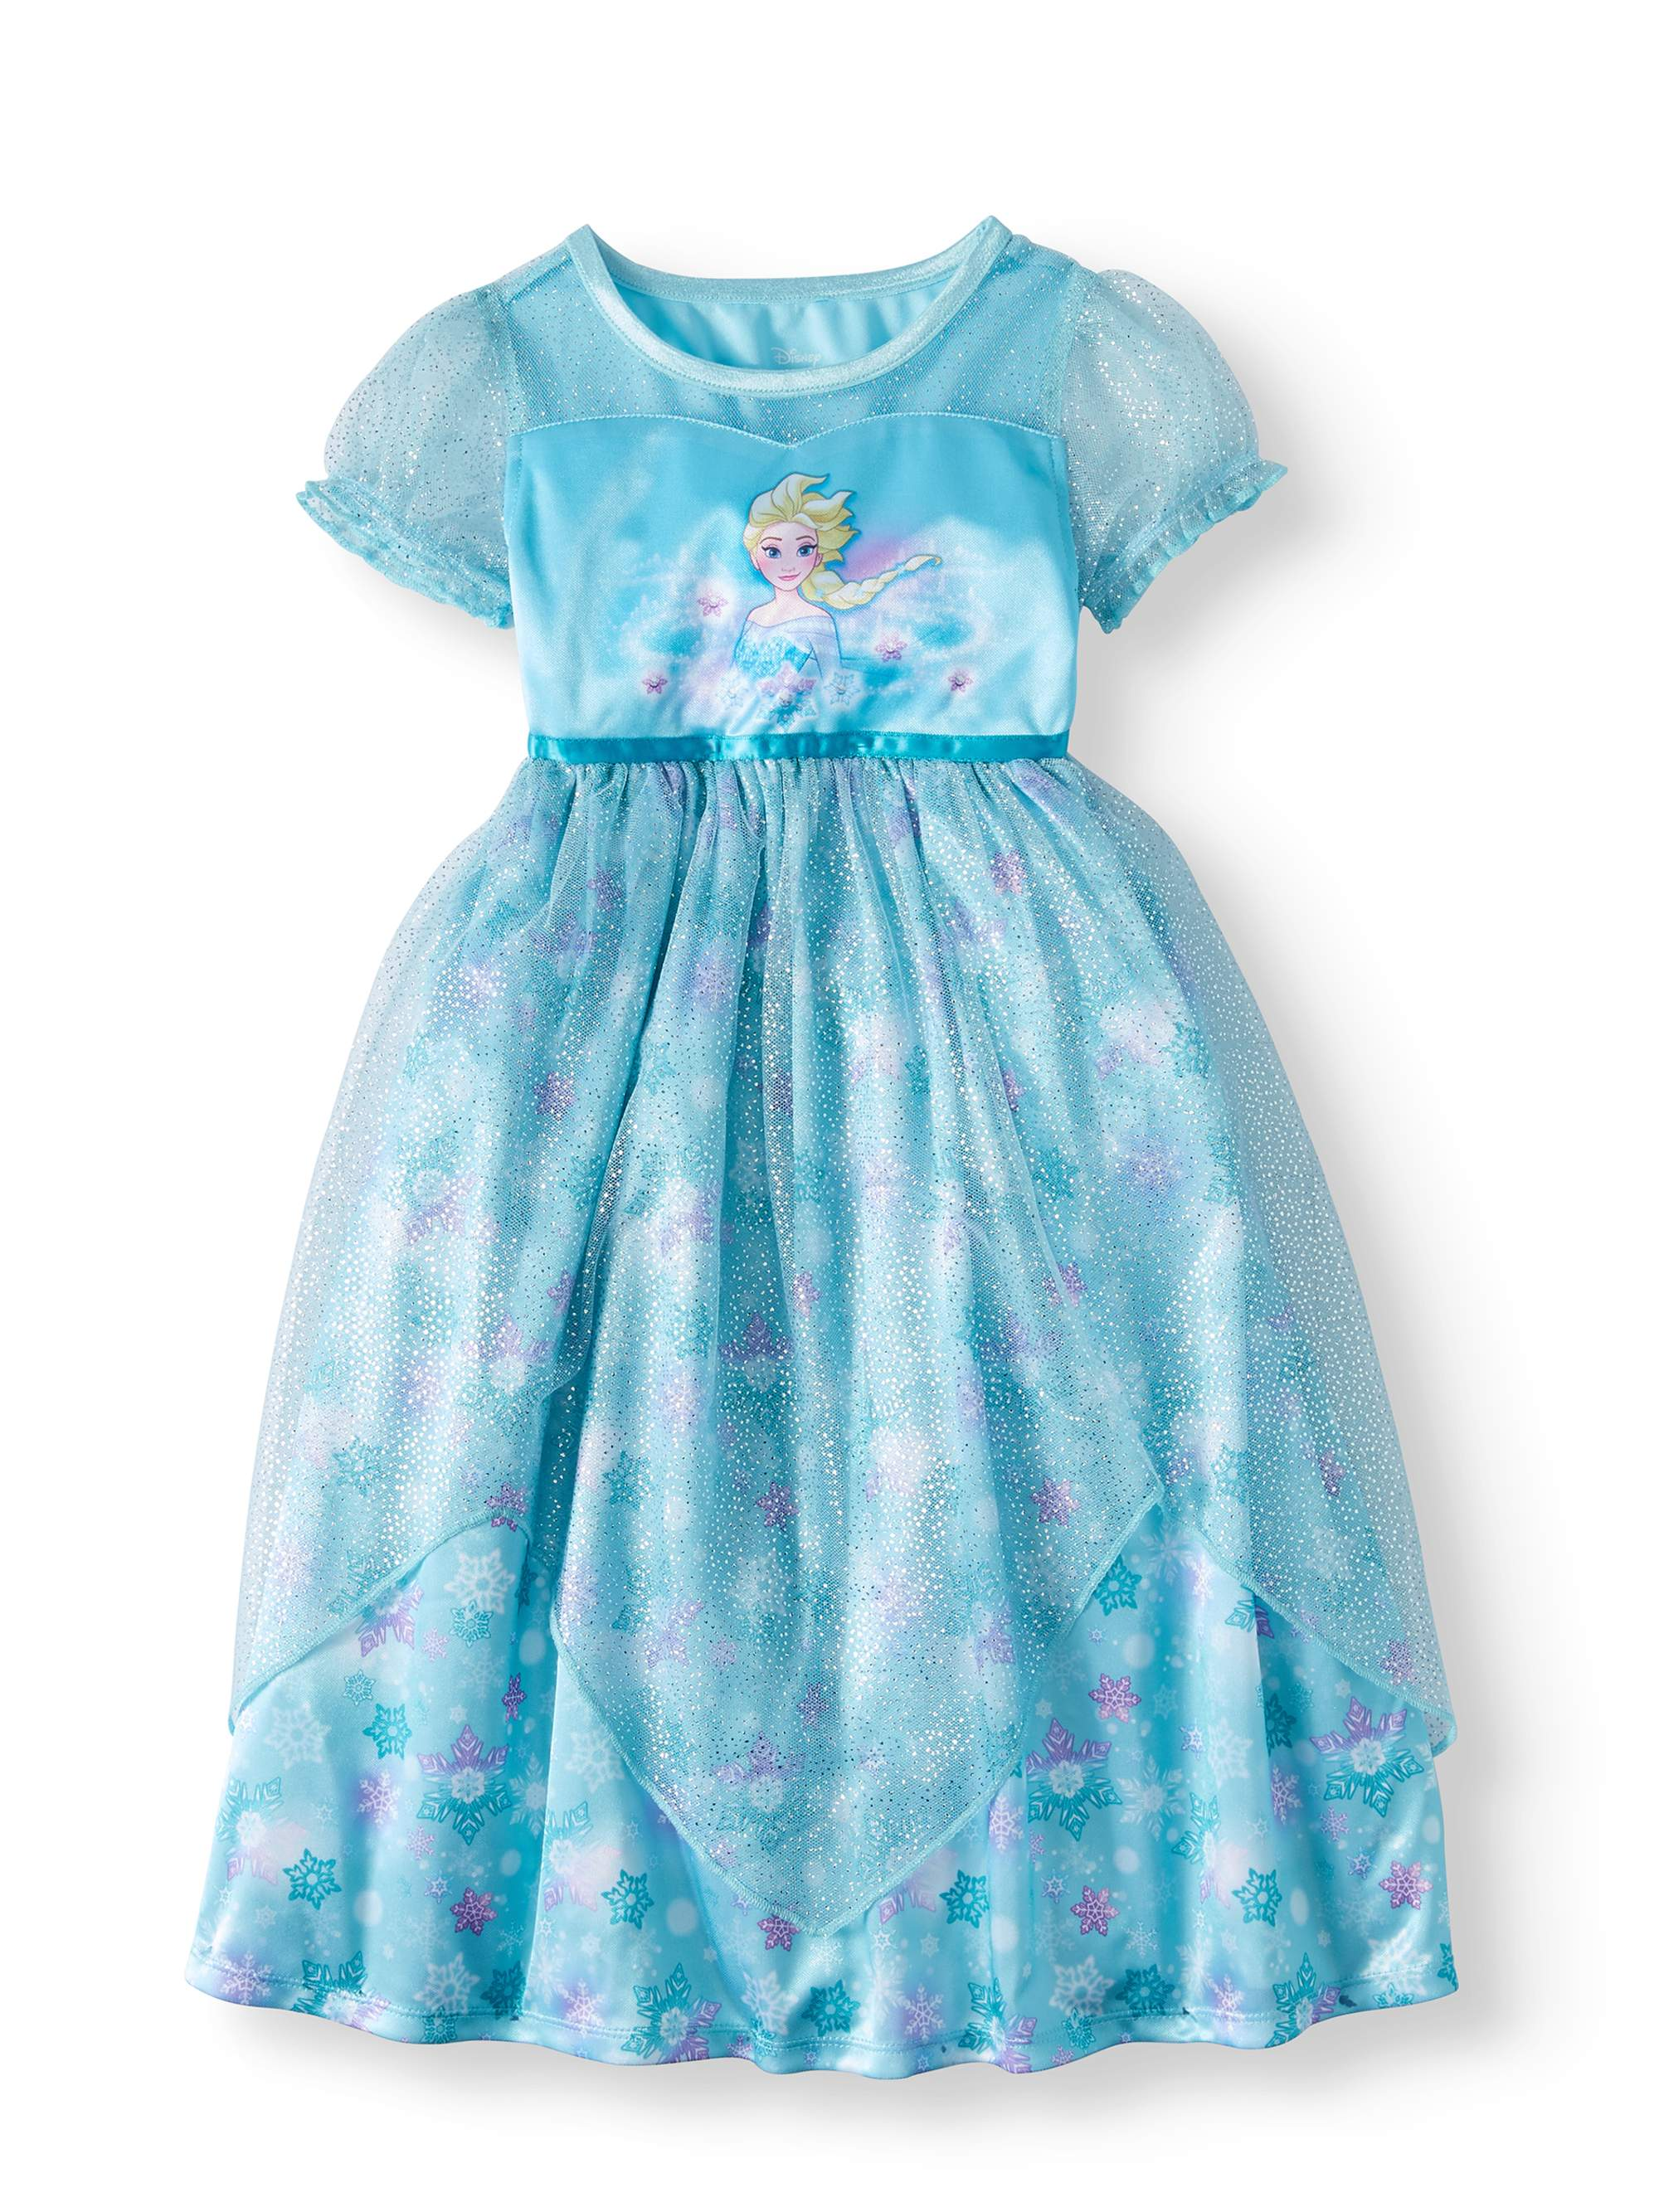 Frozen Elsa Short Sleeve Fantasy Nightgown (Toddler Girls)